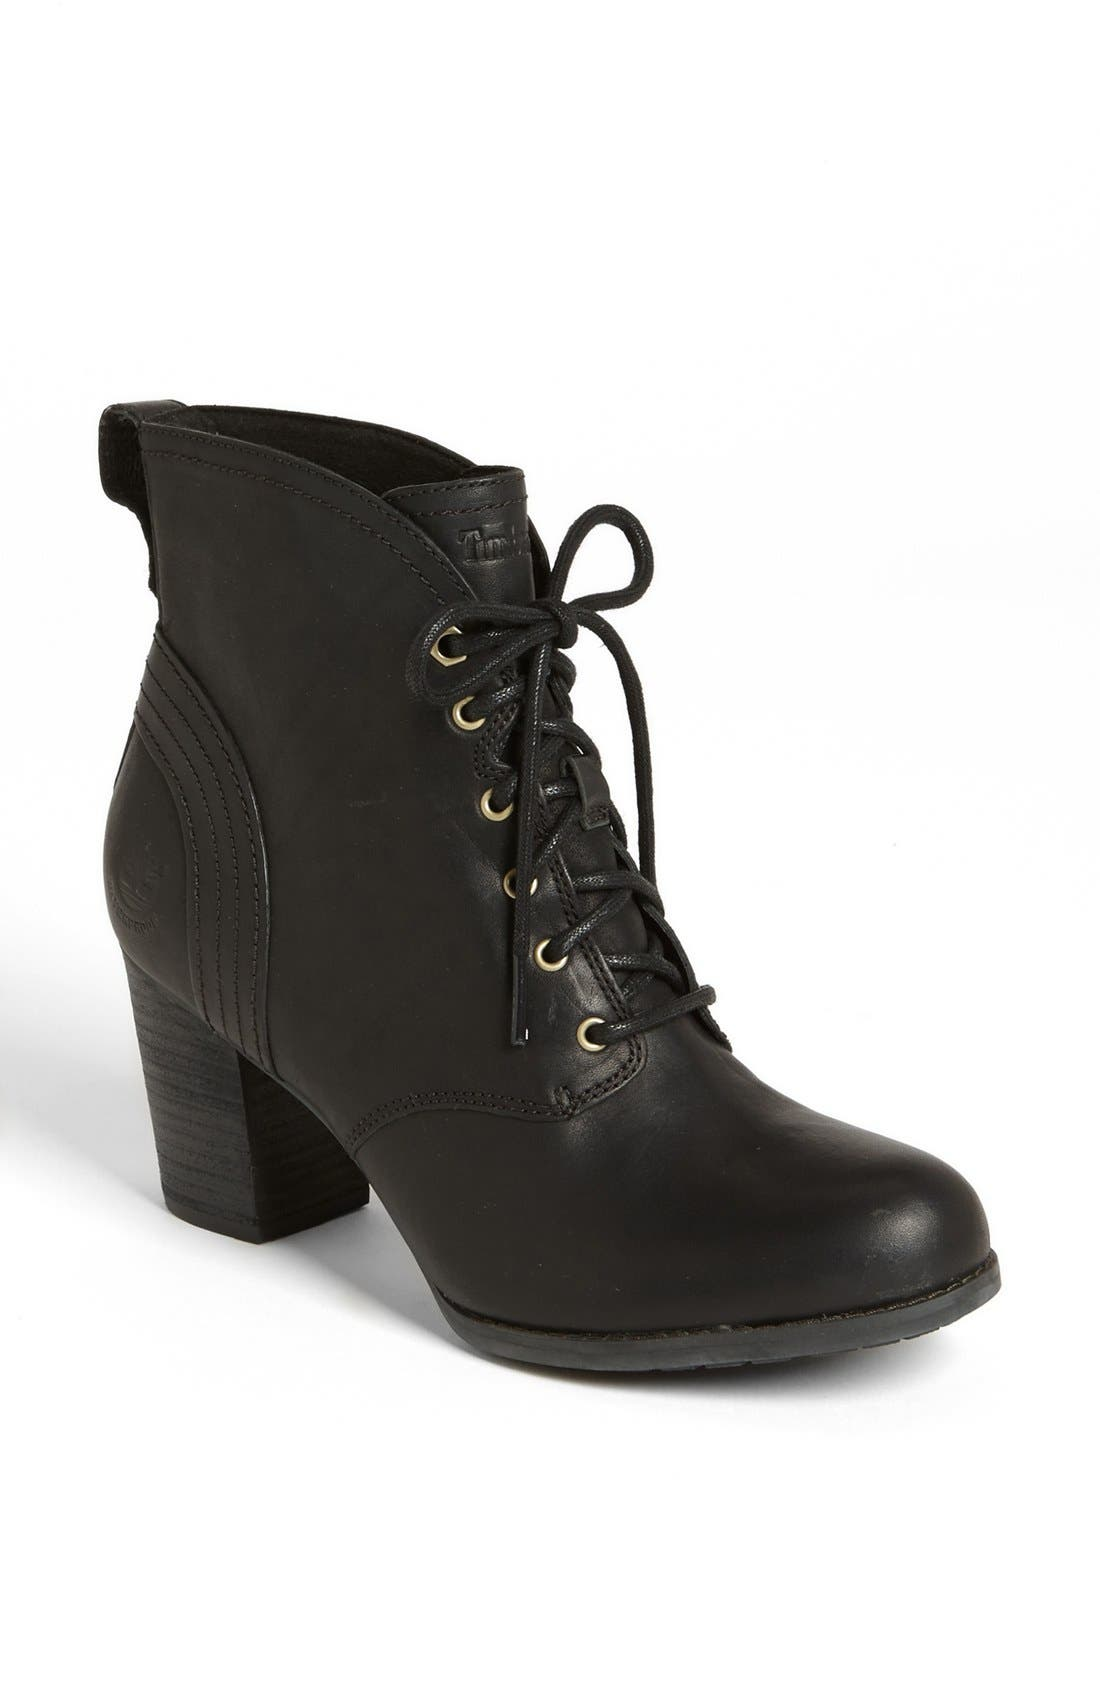 Earthkeepers<sup>®</sup> Trenton Waterproof Bootie,                             Main thumbnail 1, color,